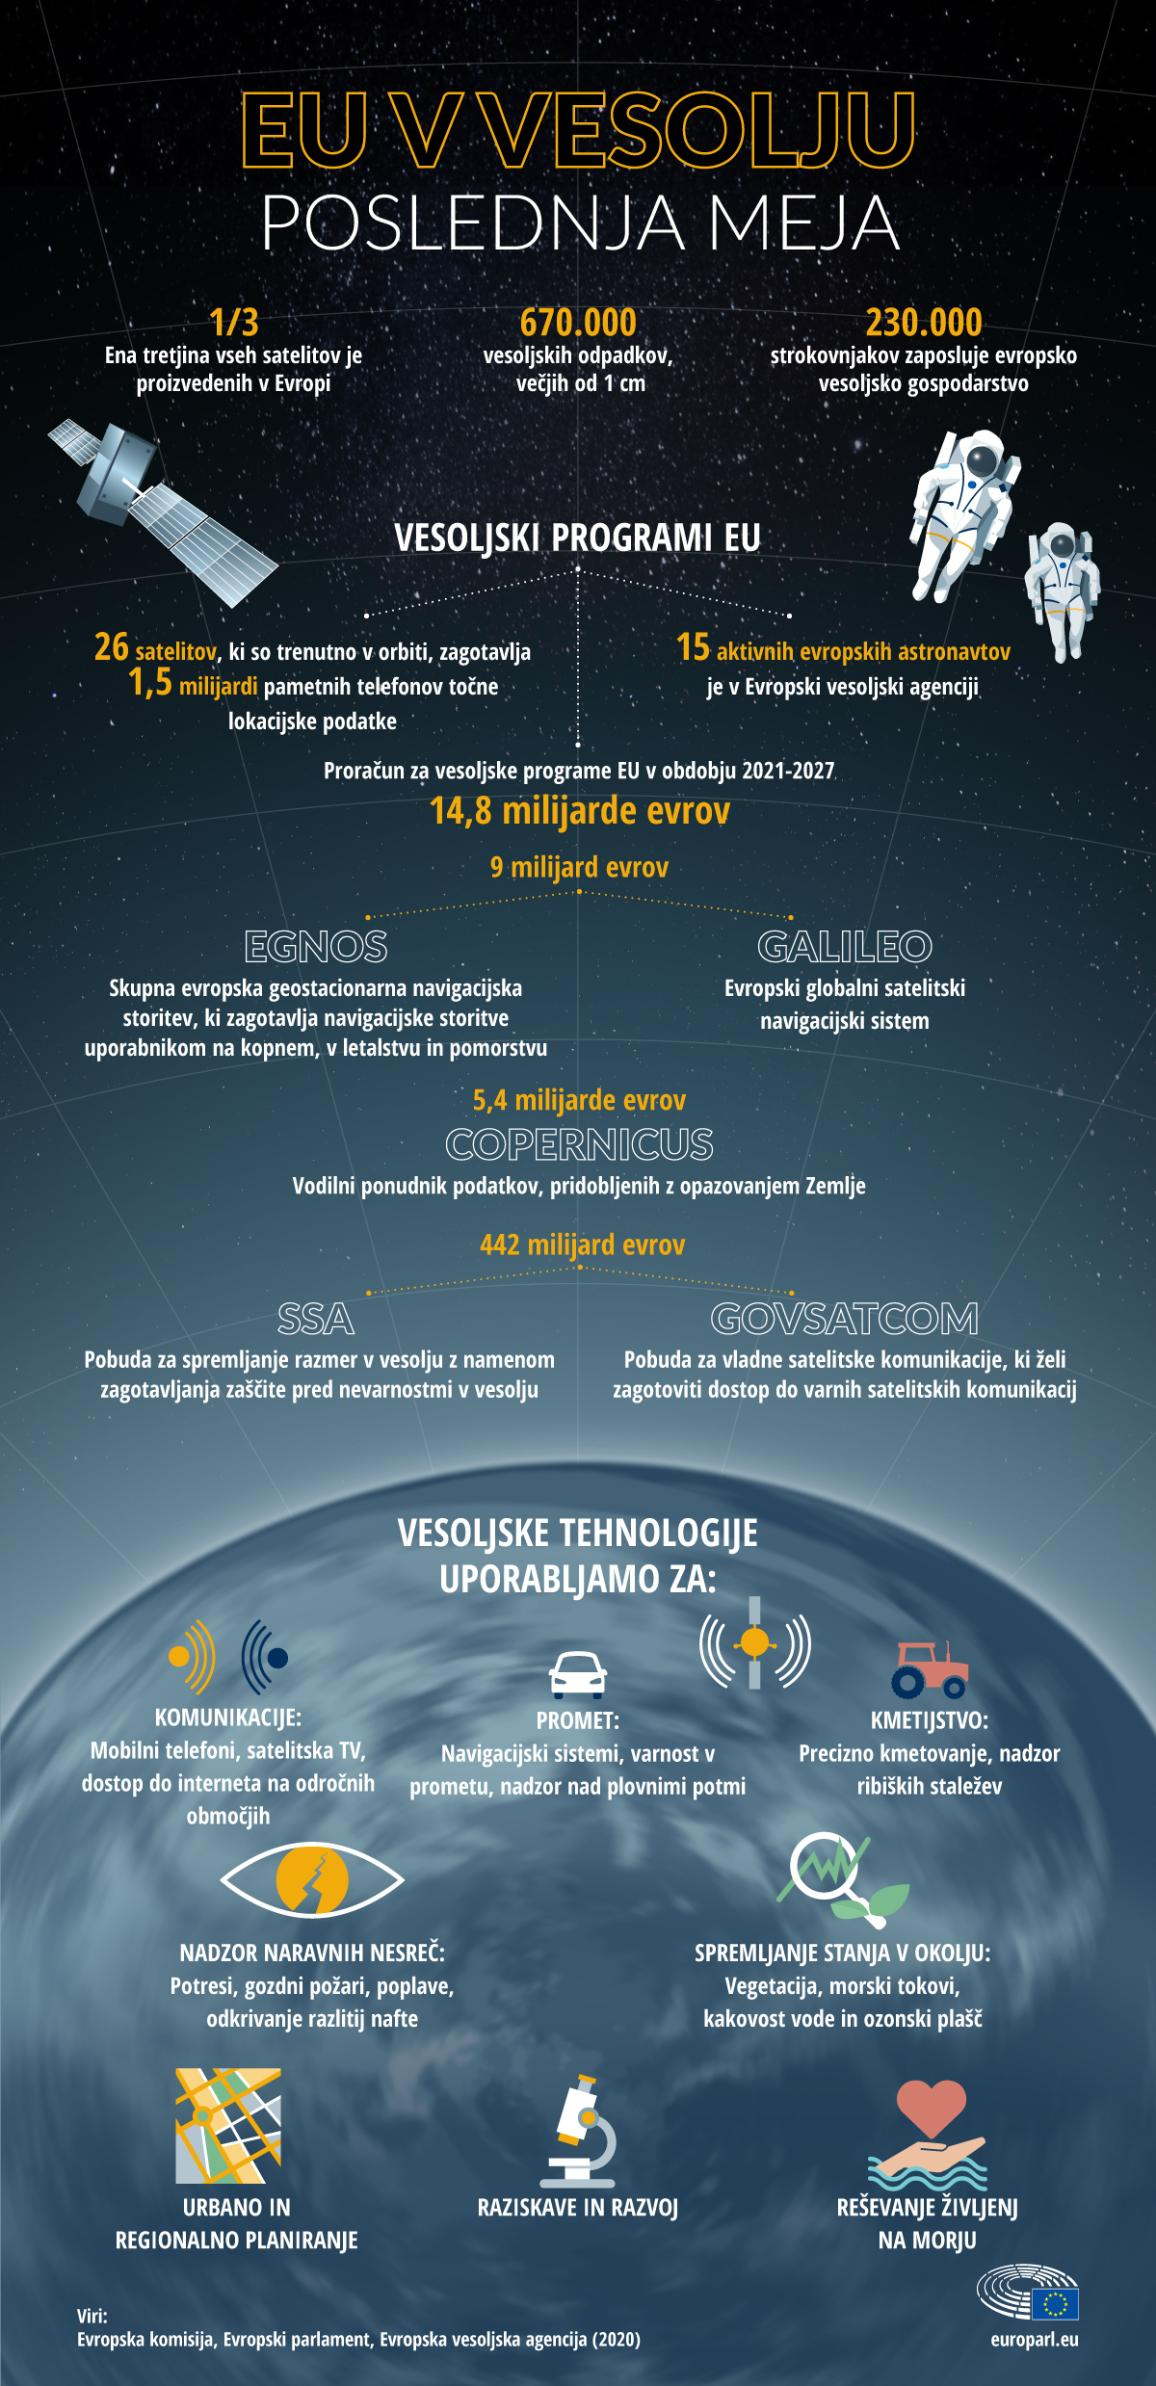 Infographic with facts and figures on EU space programmes and explaining what space technologies are used for in daily life